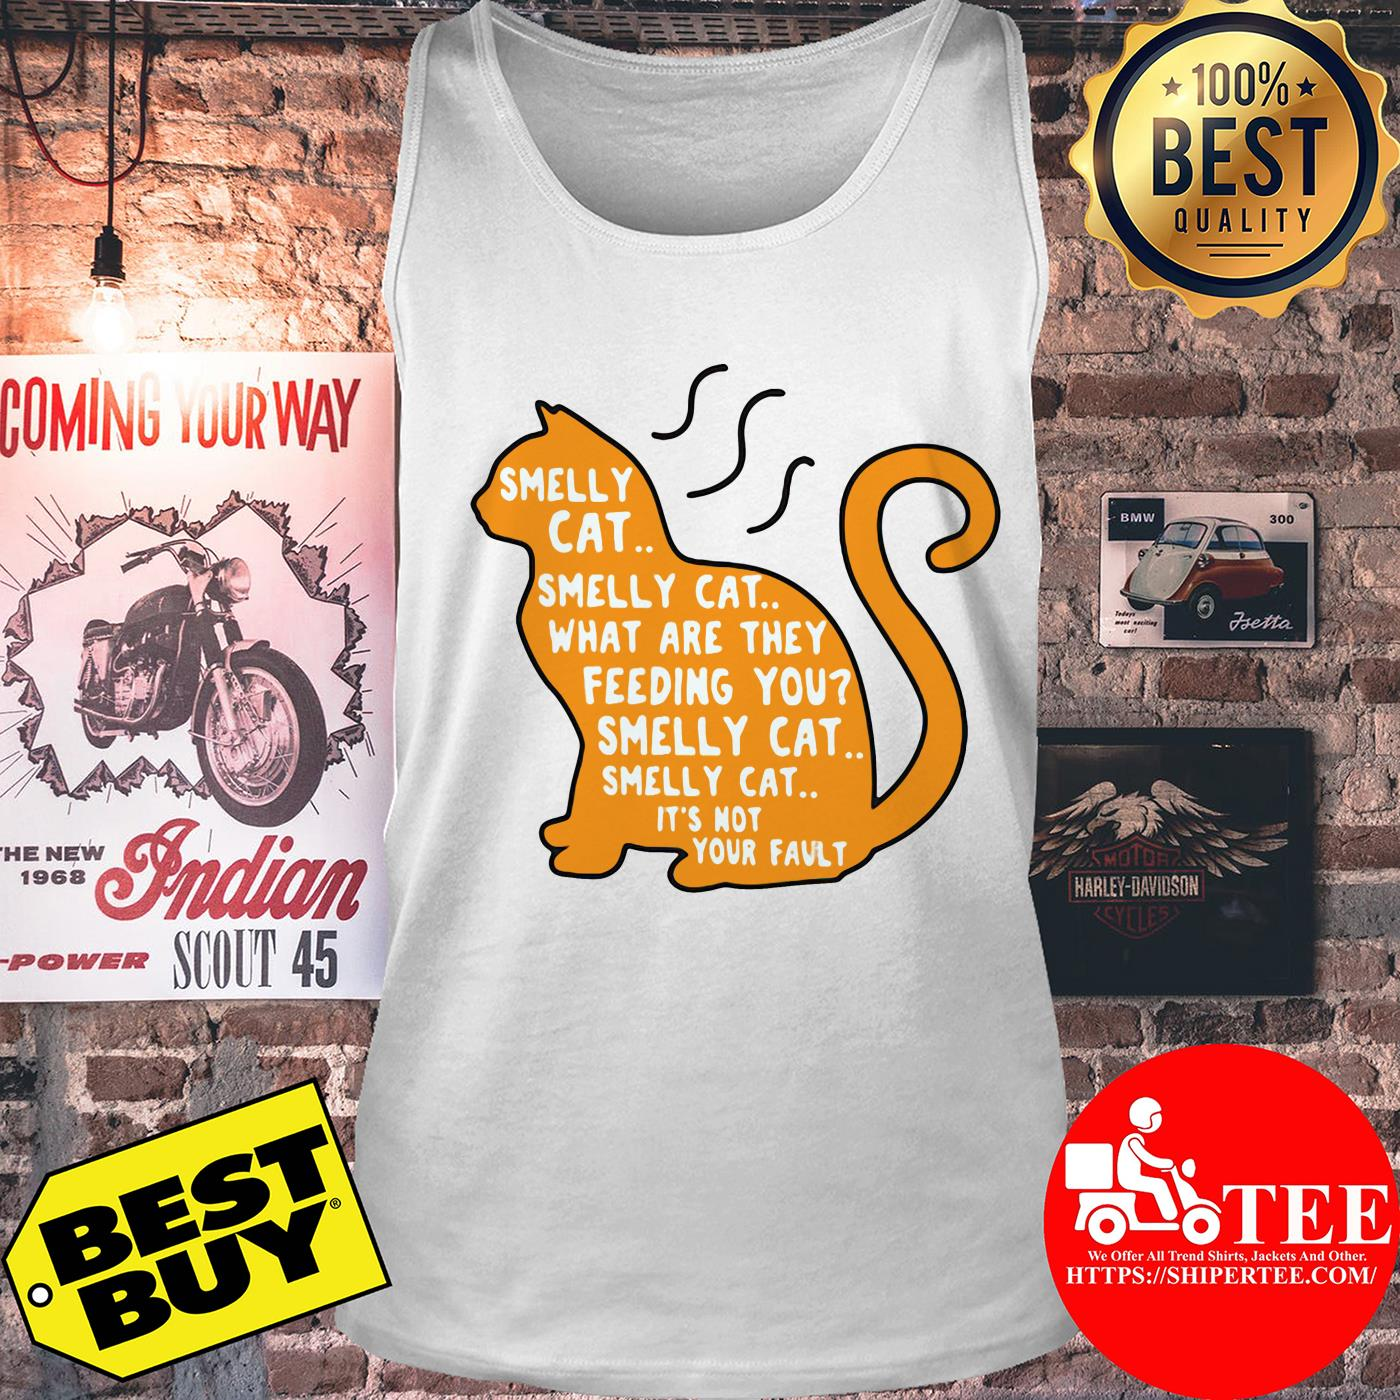 Smelly cat what are they feeding you it's not your fault tank top